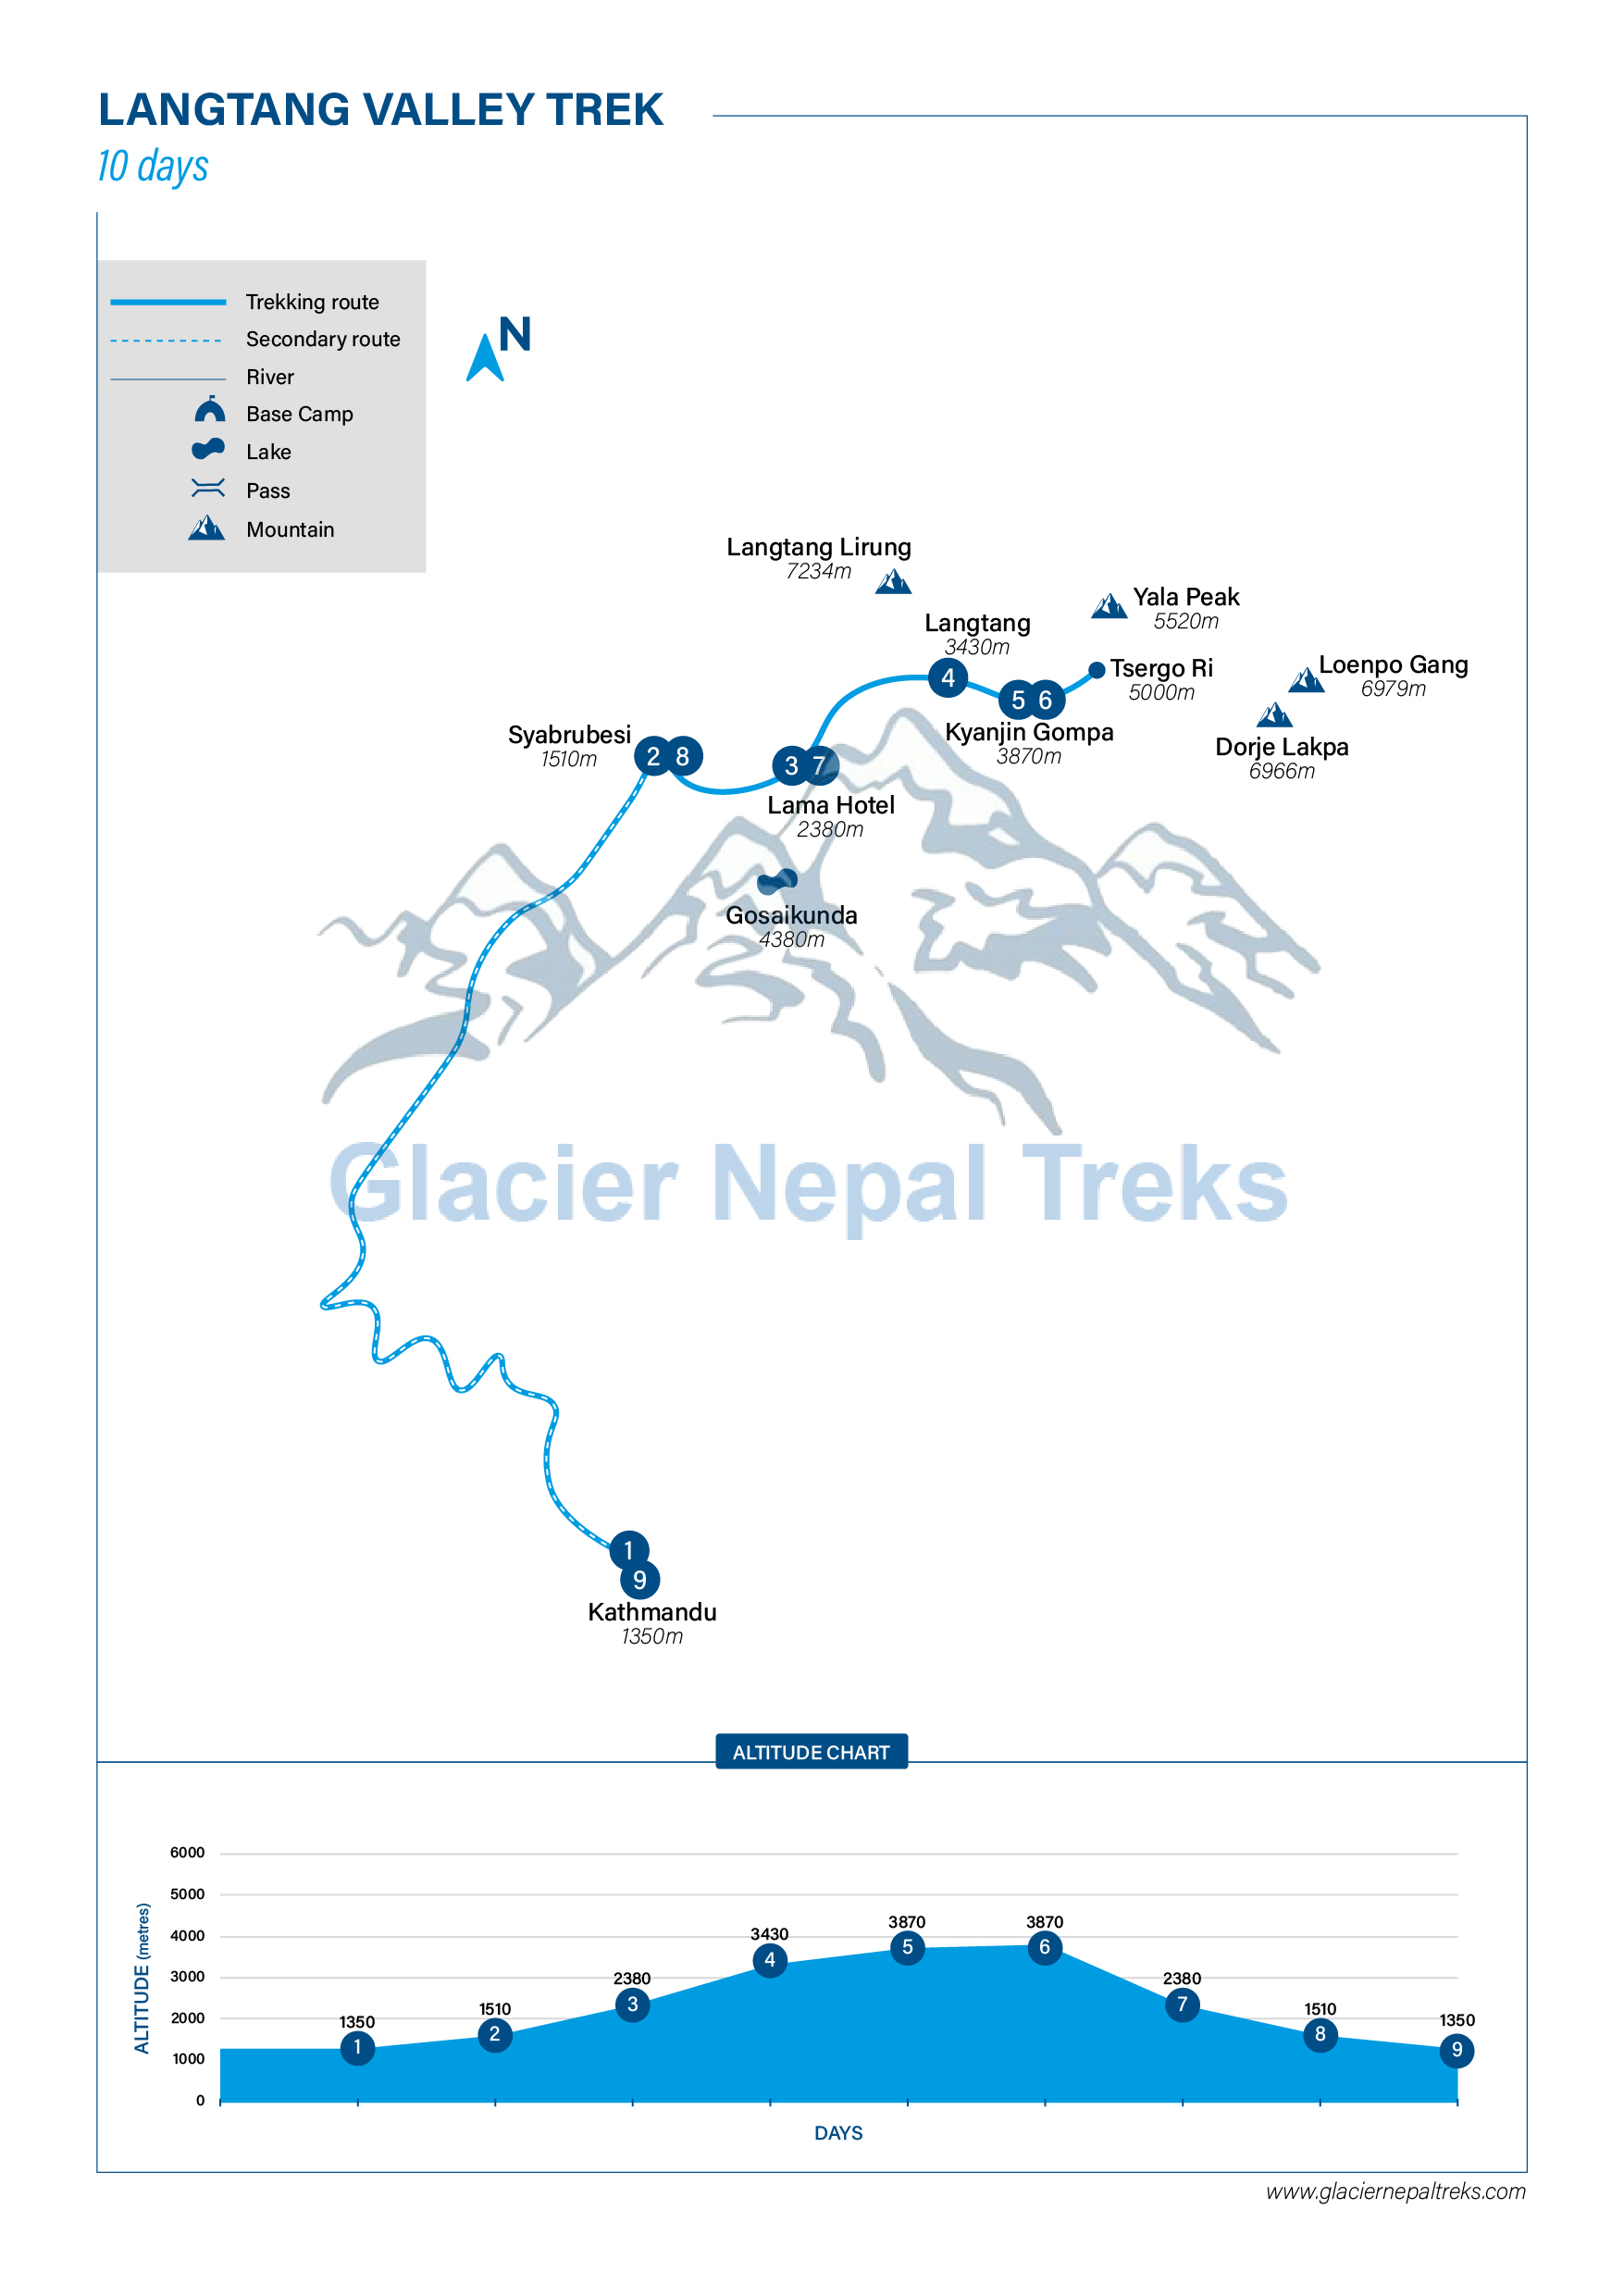 Route Map for Langtang Valley Trek | Glacier Nepal